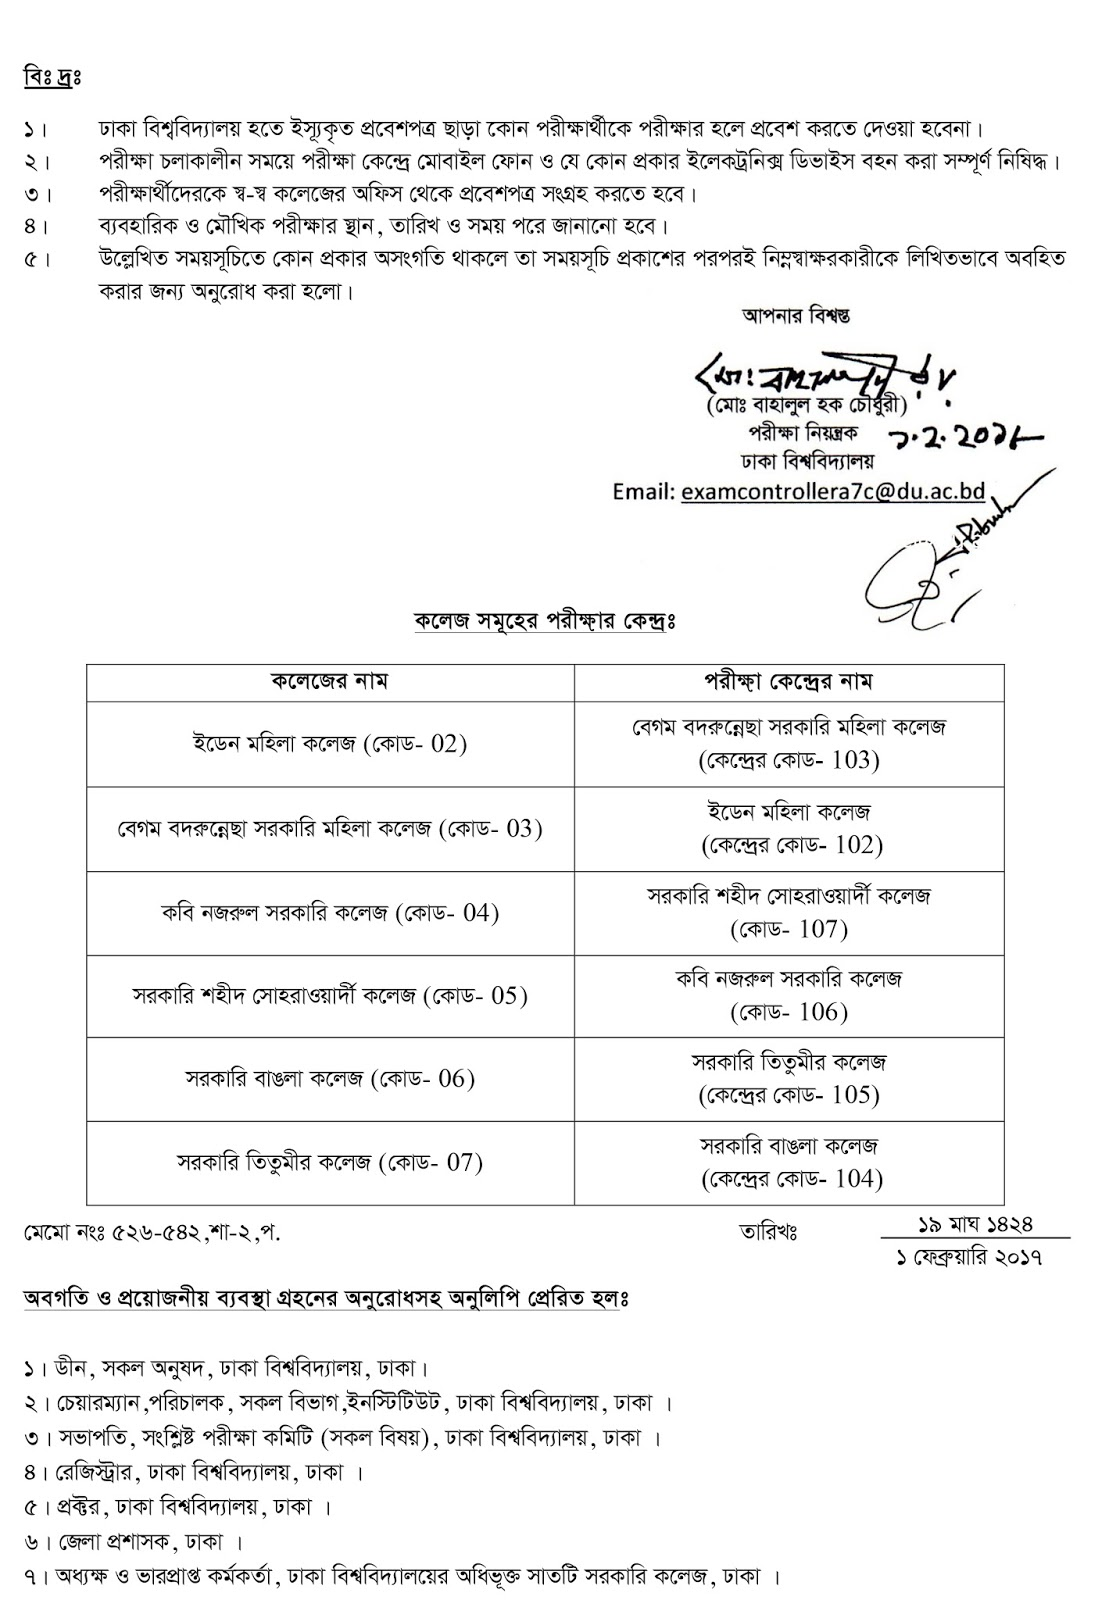 University of Dhaka Under the affiliate 7 college Masters Part-1 Exam Routine